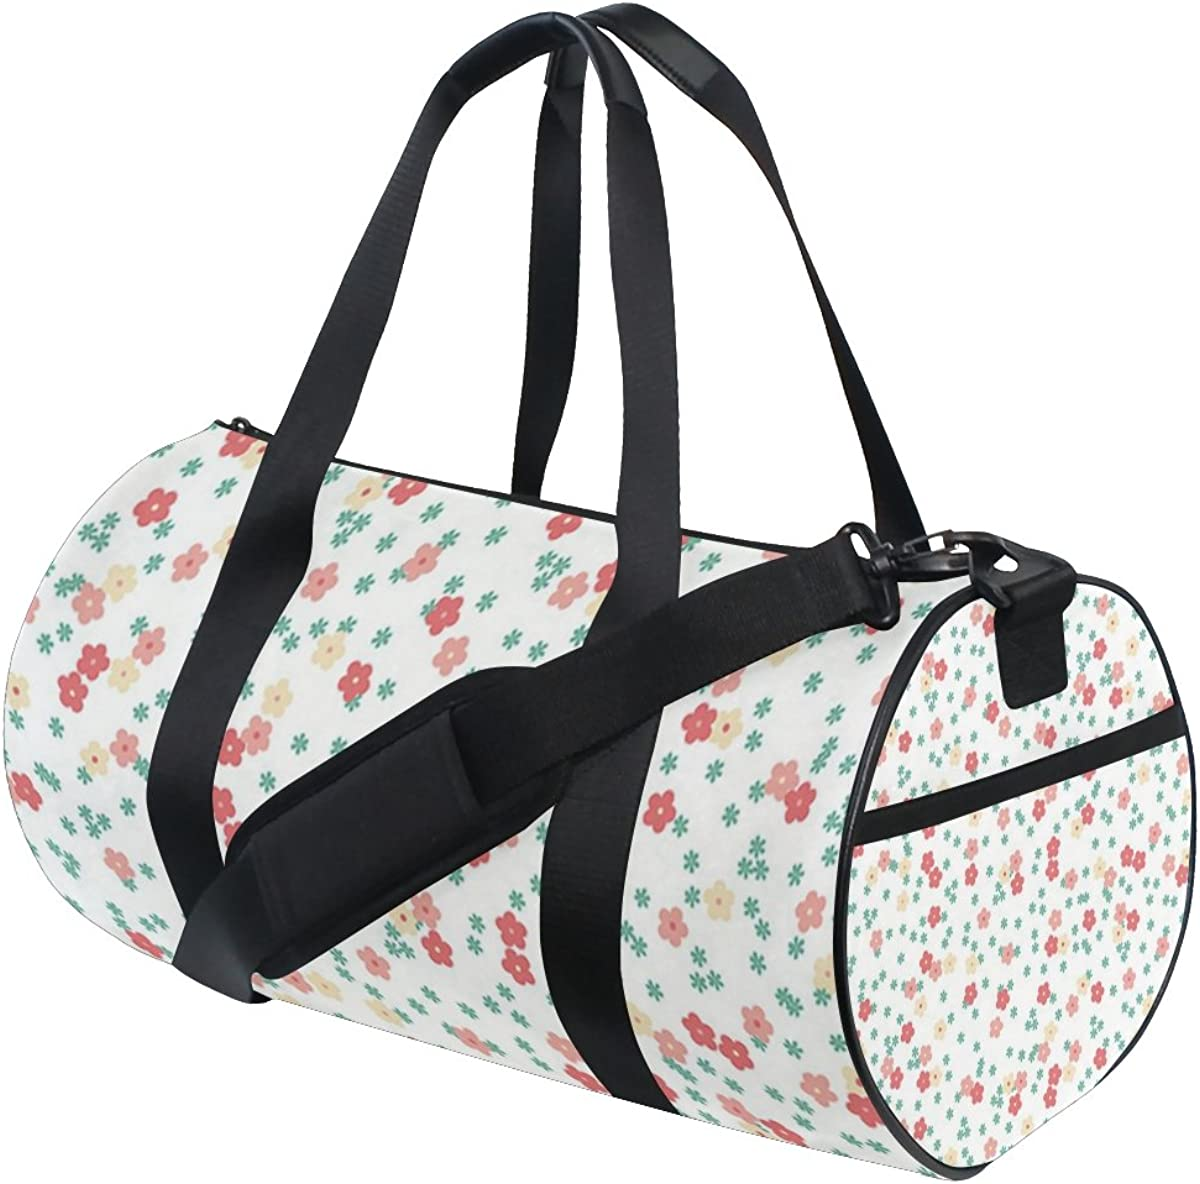 AHOMY Canvas Sports Gym Bag Flower Floral Cloth Travel Shoulder Bag